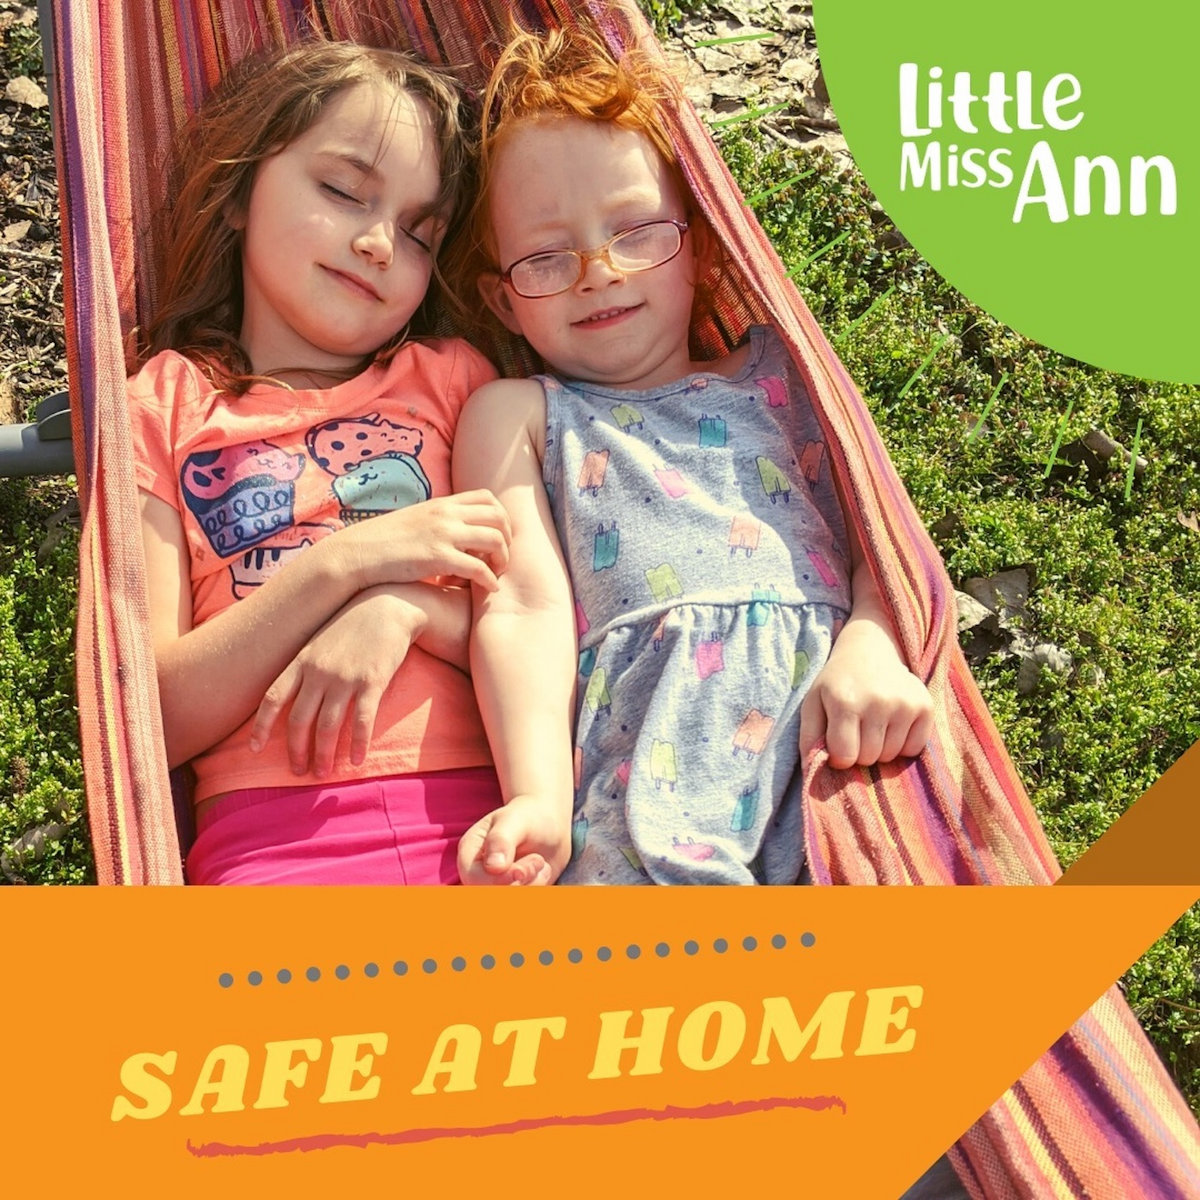 Safe at Home by Little Miss Ann